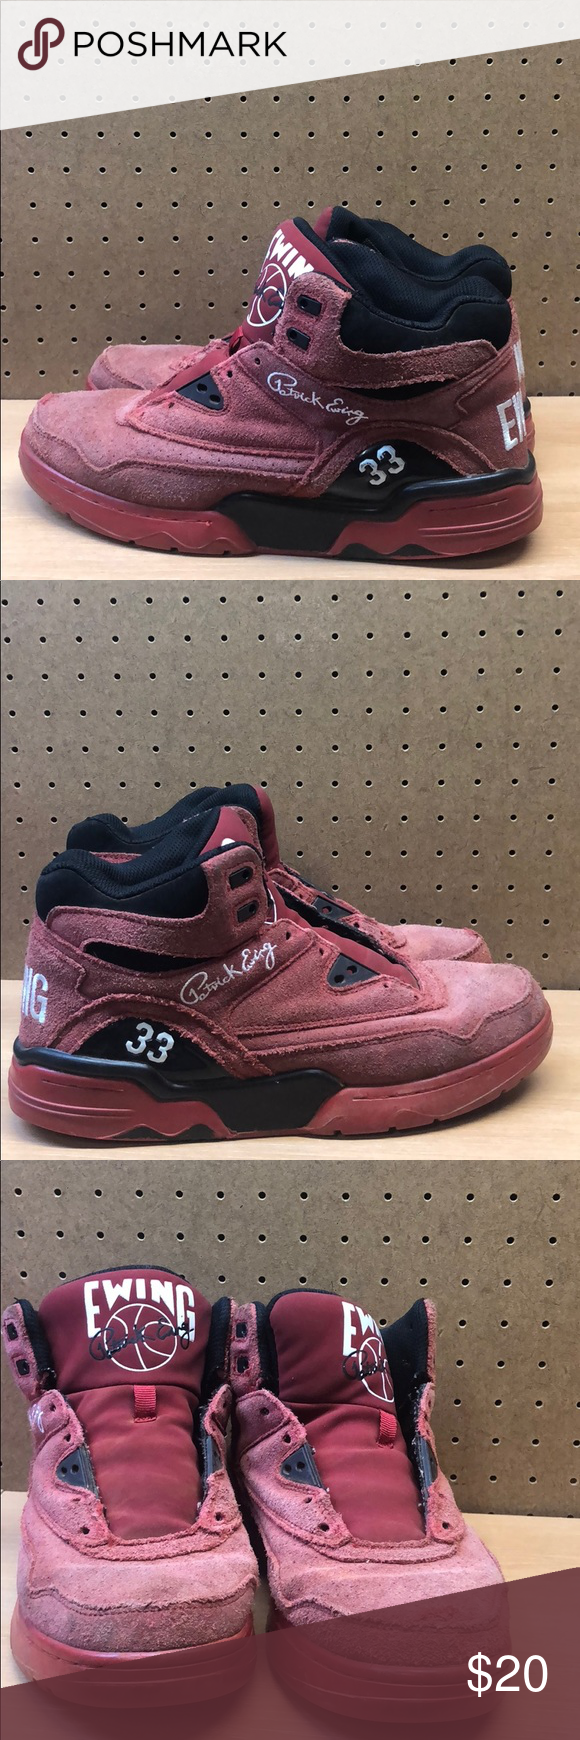 41ce2b1a32d Patrick Ewing Red Suede Sneakers Men s sz 9.5     Missing Shoe Laces These  look decent despite lots of wear and tear (see pics) Size 9.5 Men s Missing  ...